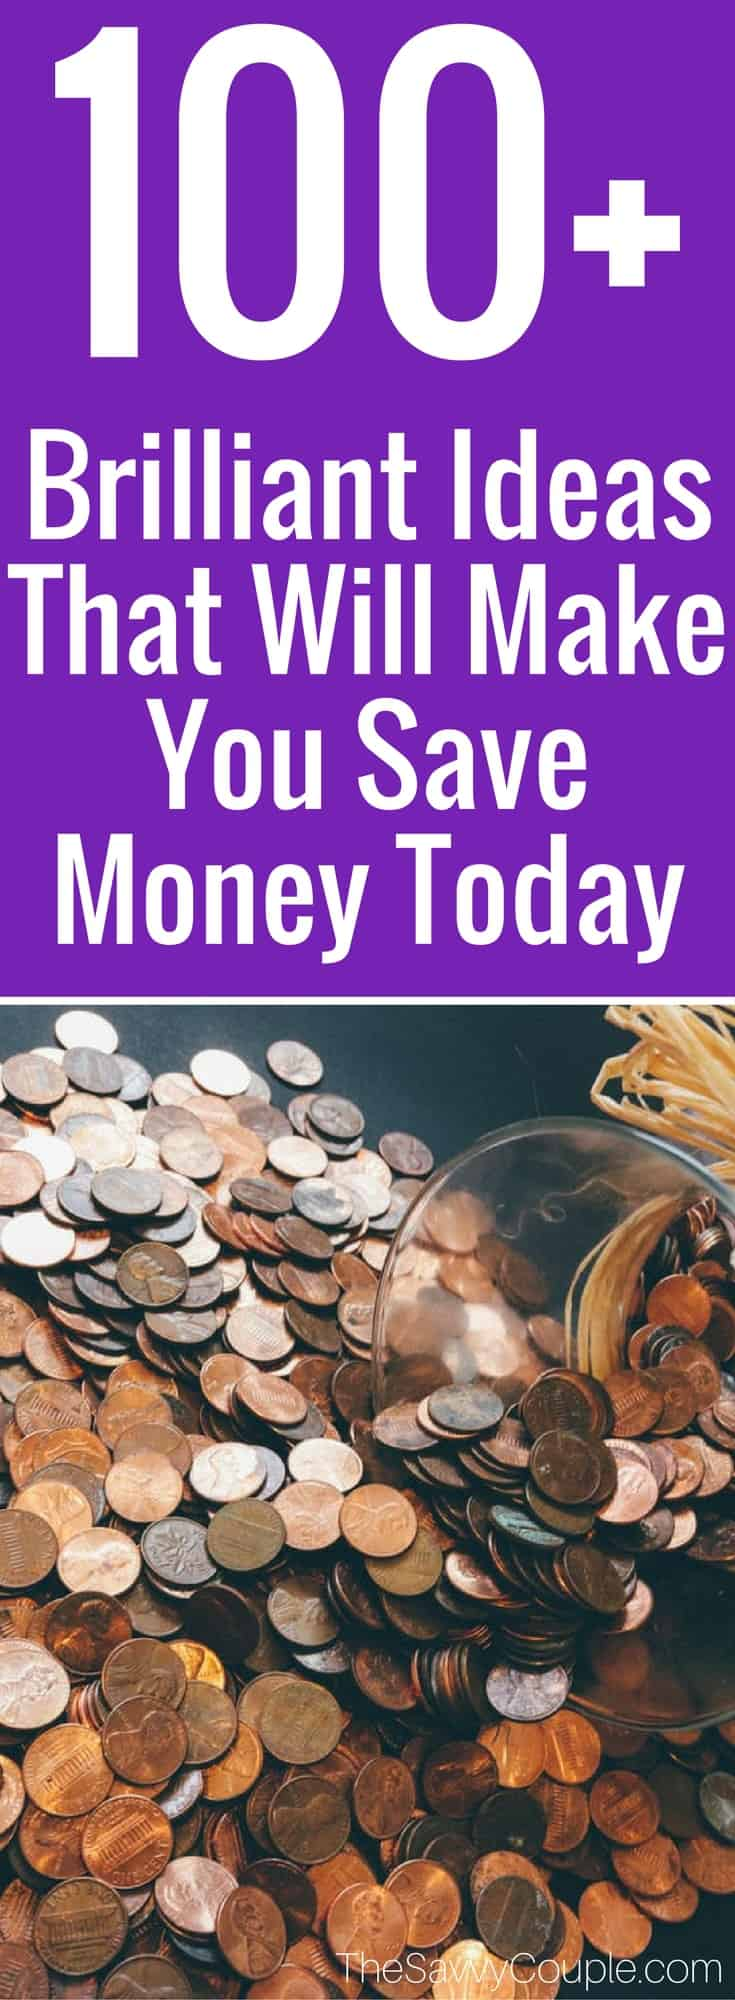 This guide on saving money is AMAZING! I am so glad I found this guide and now know how to save money like never before. So many unique and frugal money saving ideas! Can't wait to see how much money I can save for my family this year. Pin this! #SaveMoney #Save #Cash #Finance #Budget #Frugal #FrugalLiving #Cheap